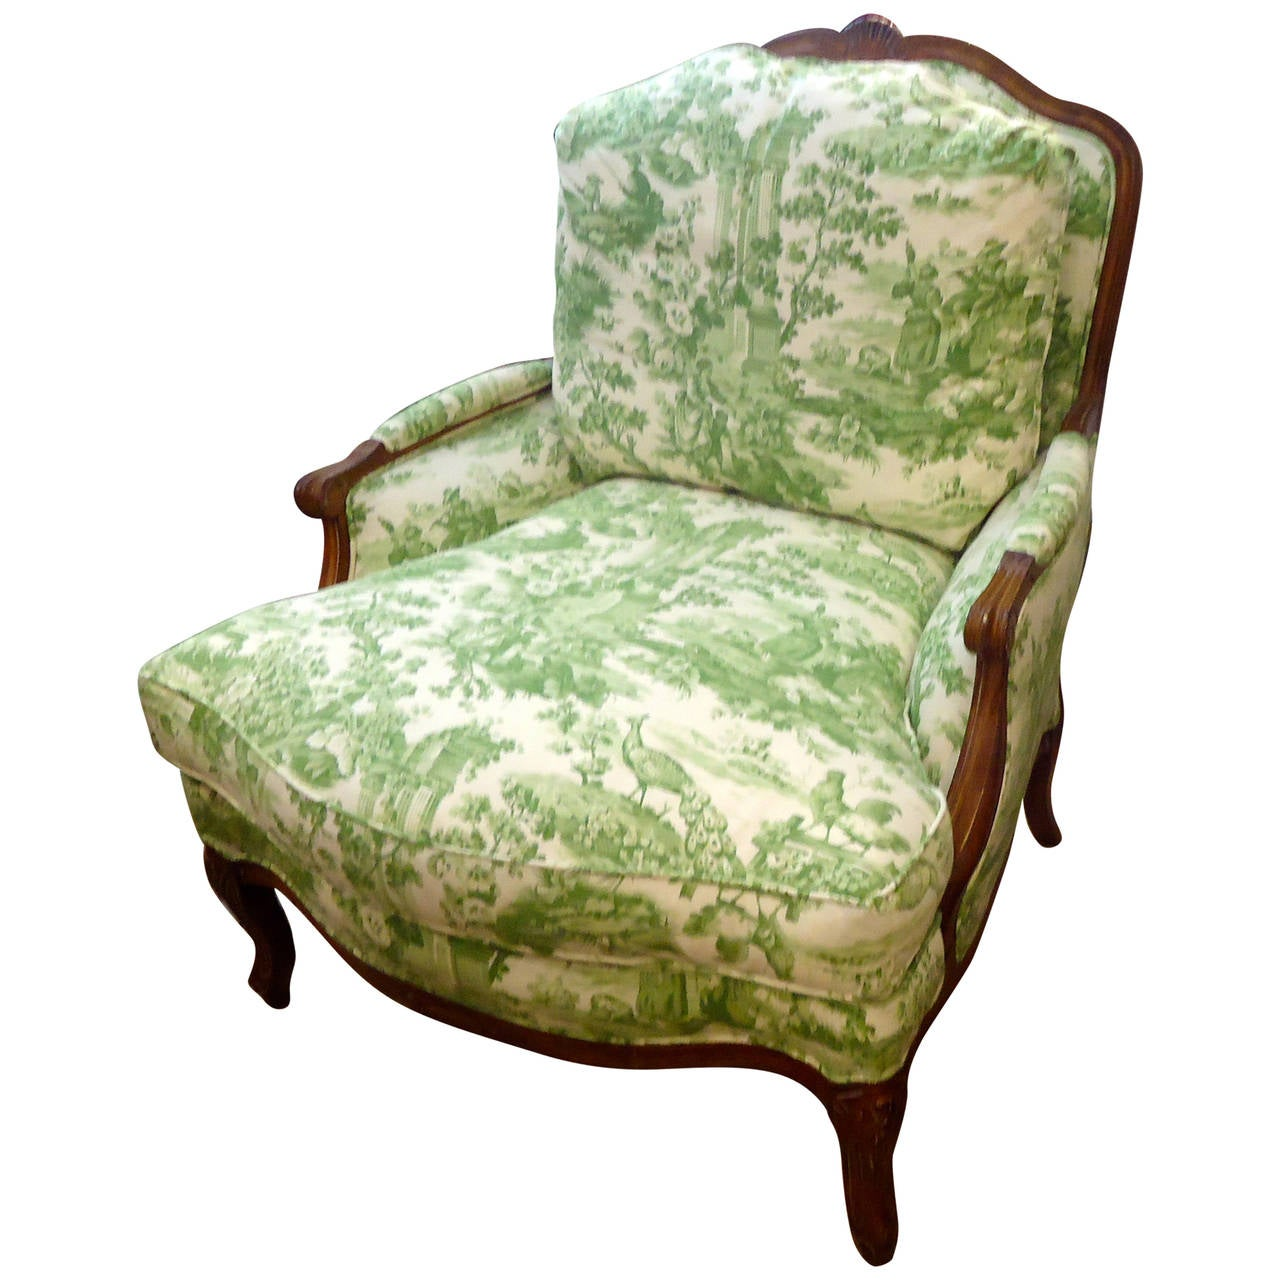 Large Comfy French Bergere Lounge Chair Upholstered In